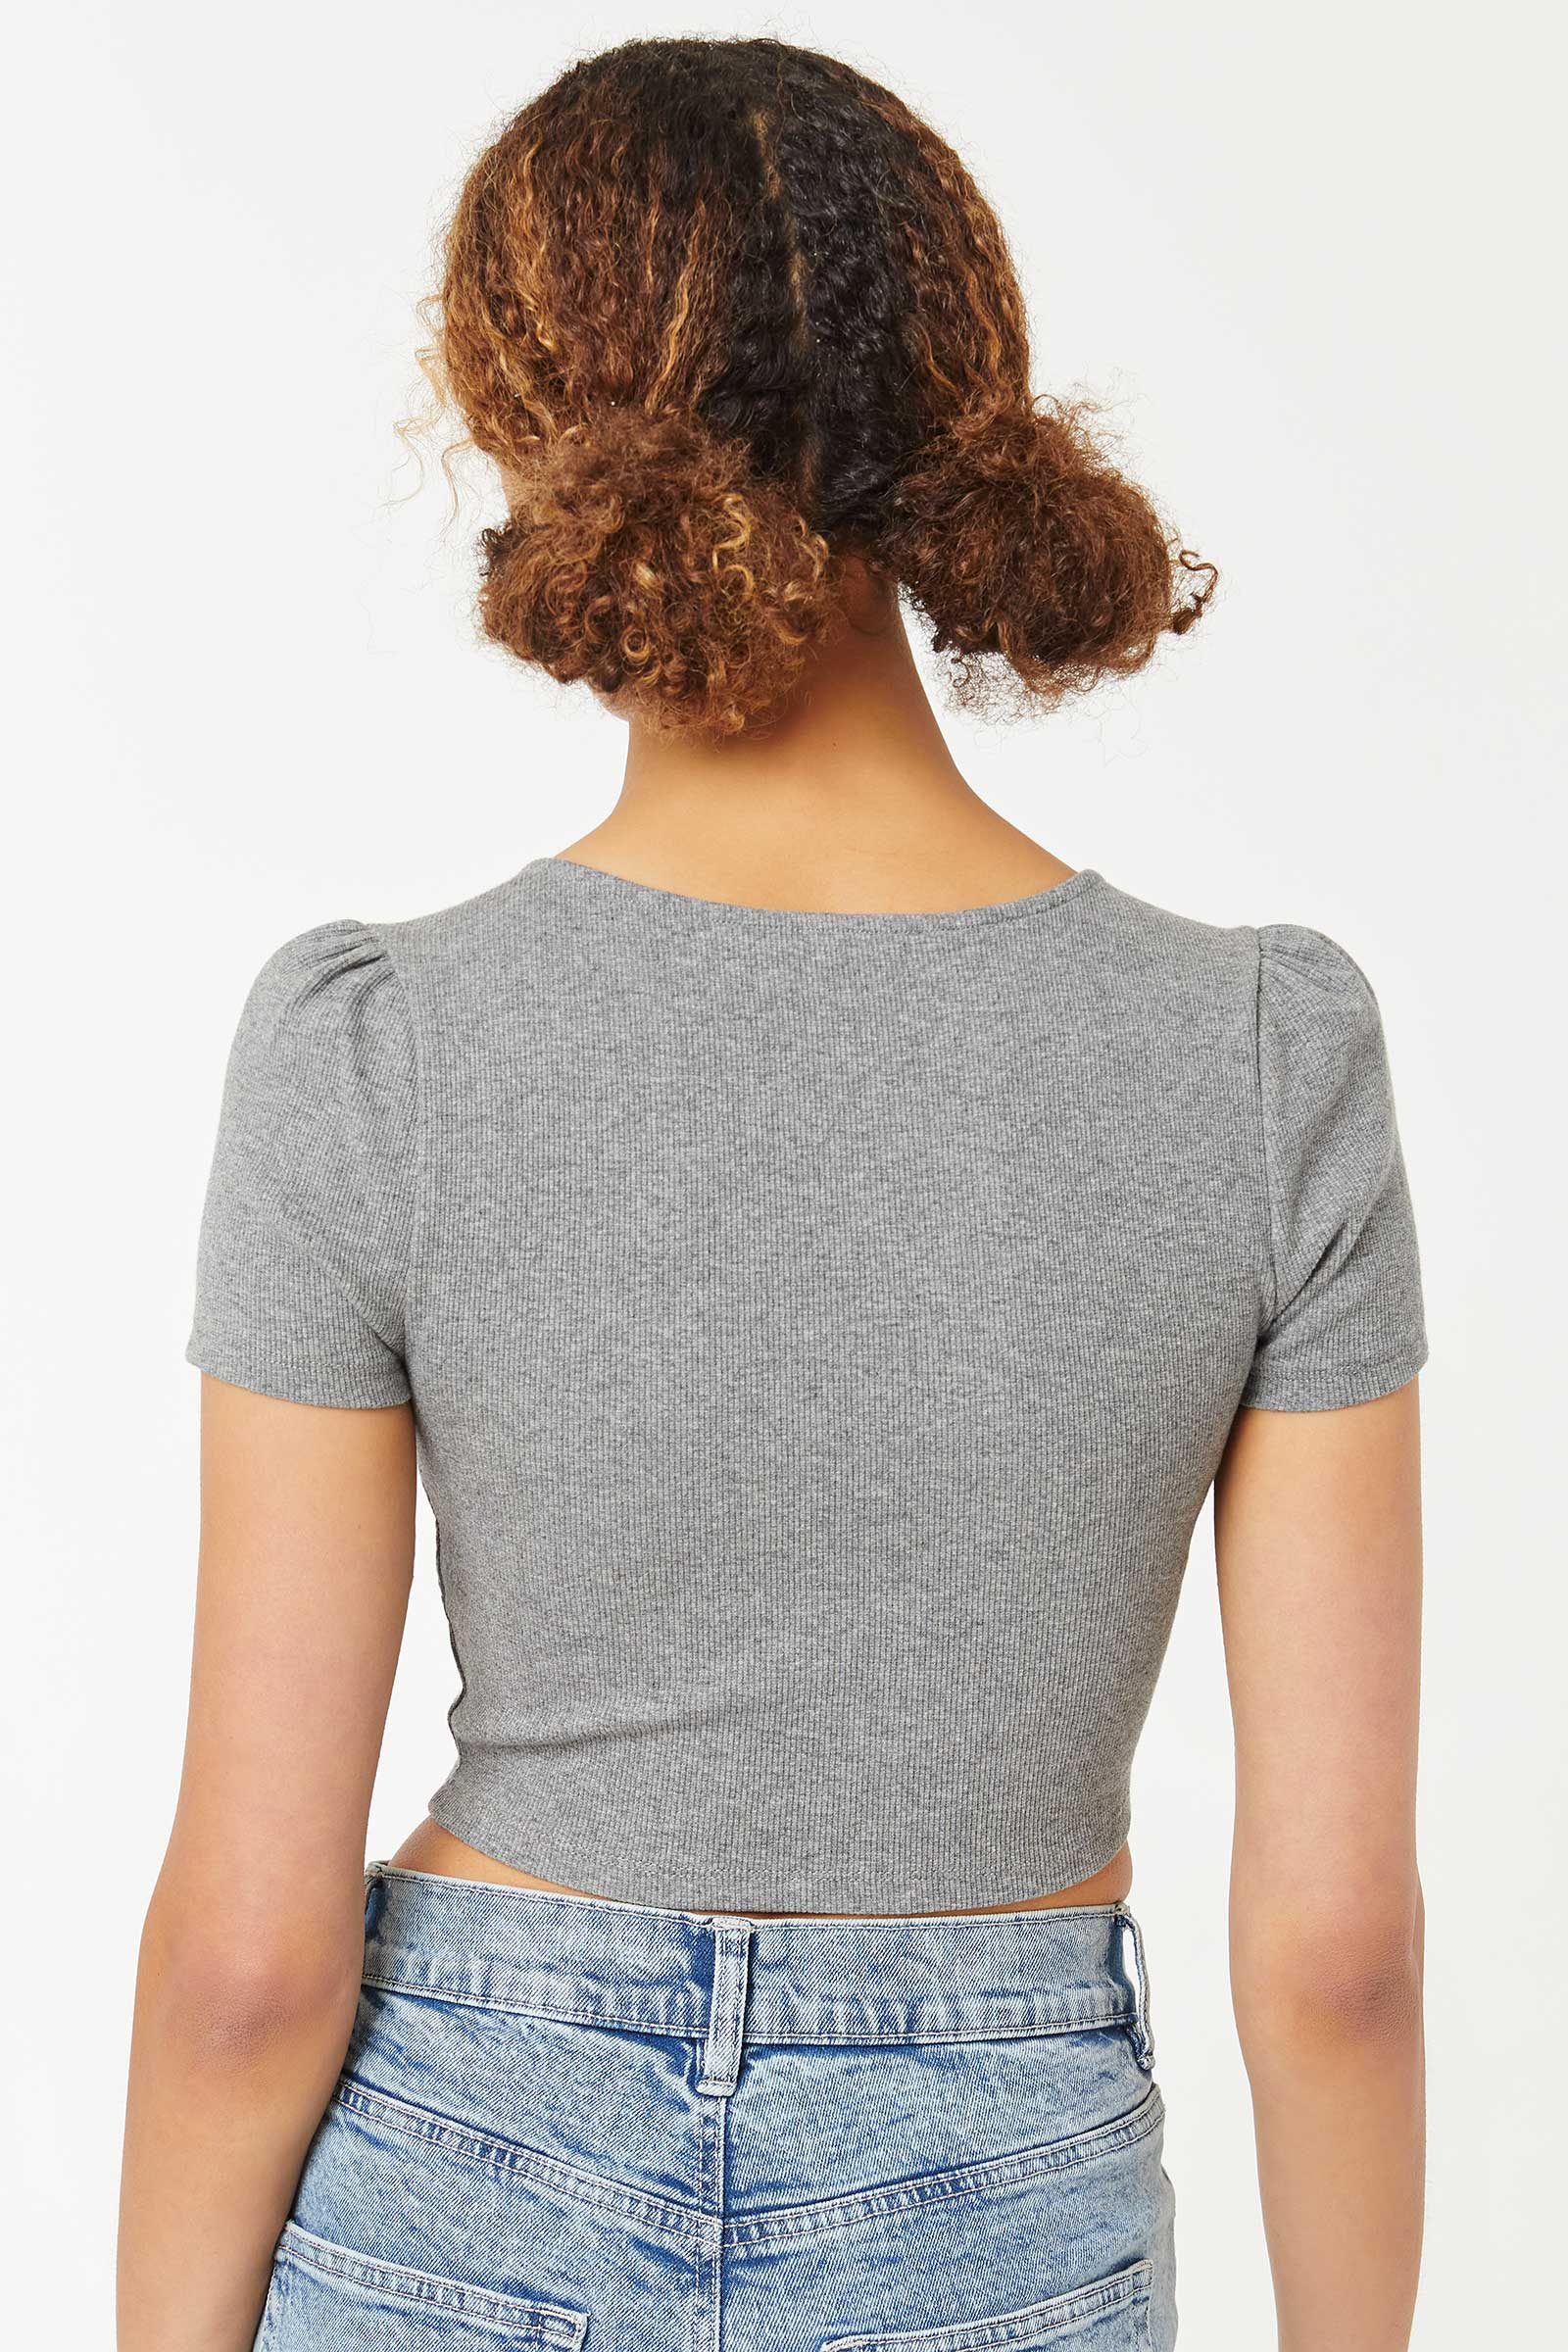 Ultra Cropped Bustier Top with Puffy Sleeves